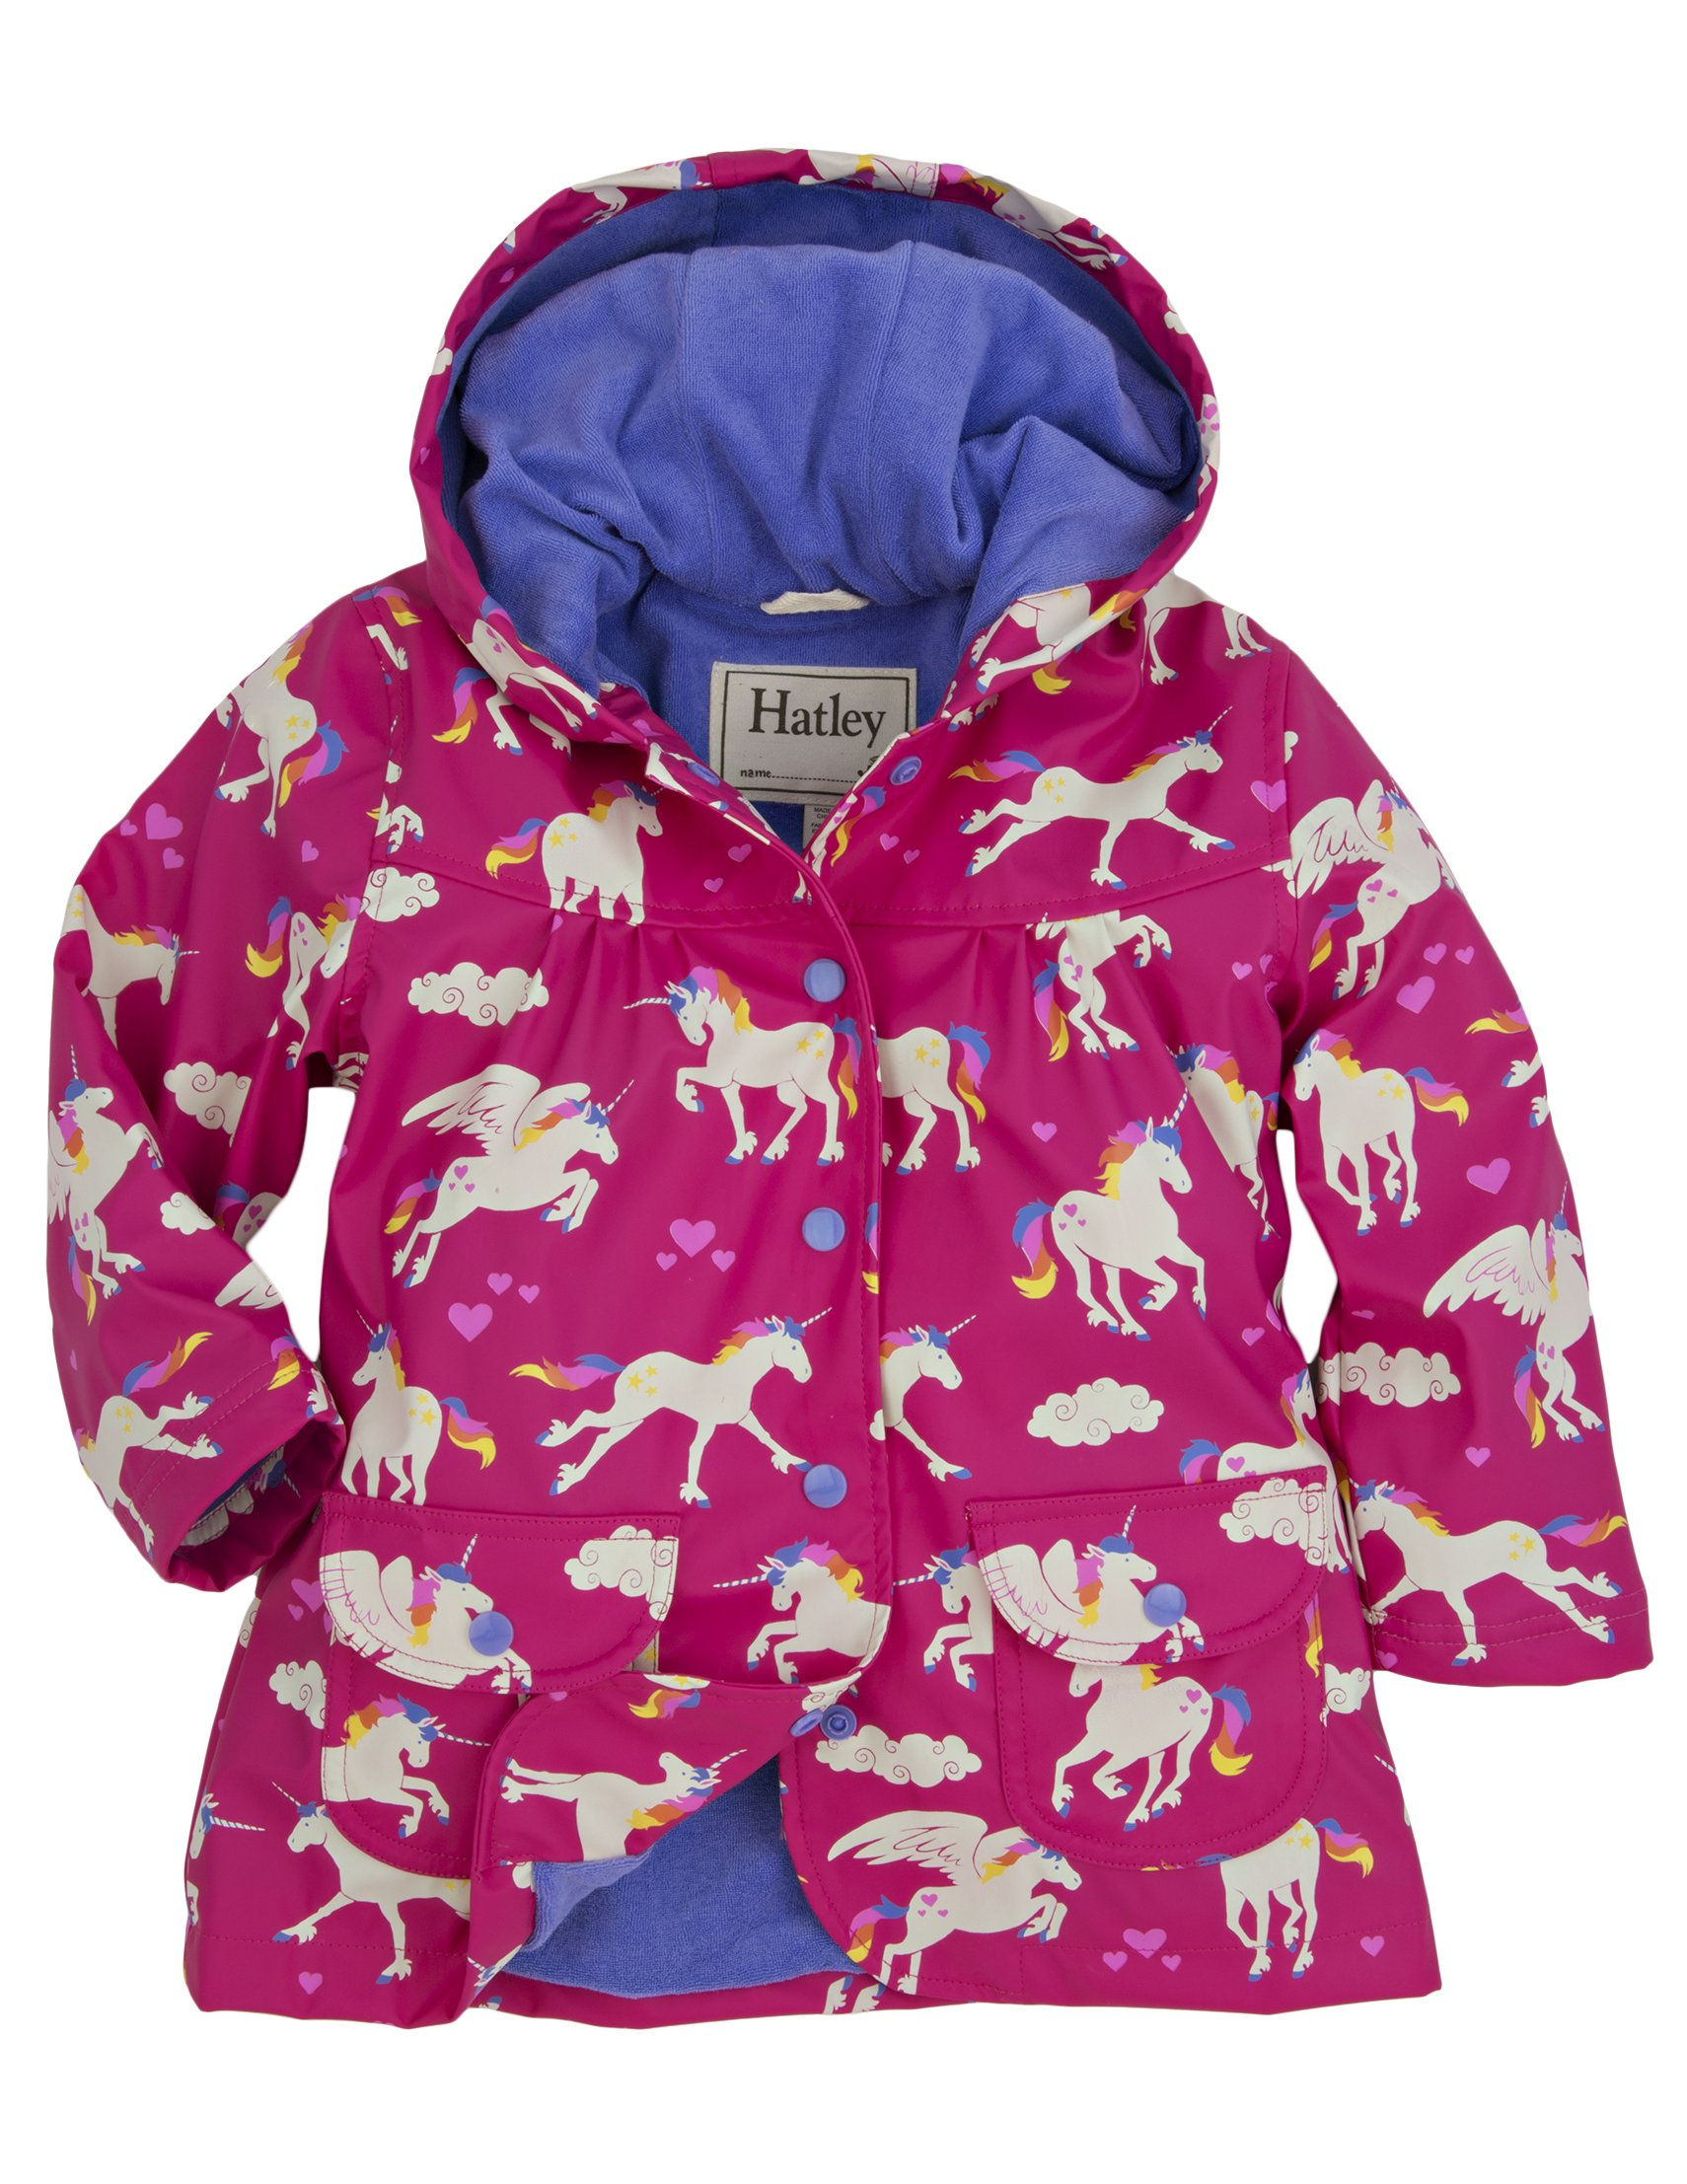 Hatley Little Girls' Raincoat Unicorns and Rainbows, Pink Unicorns and Rainbows, 4